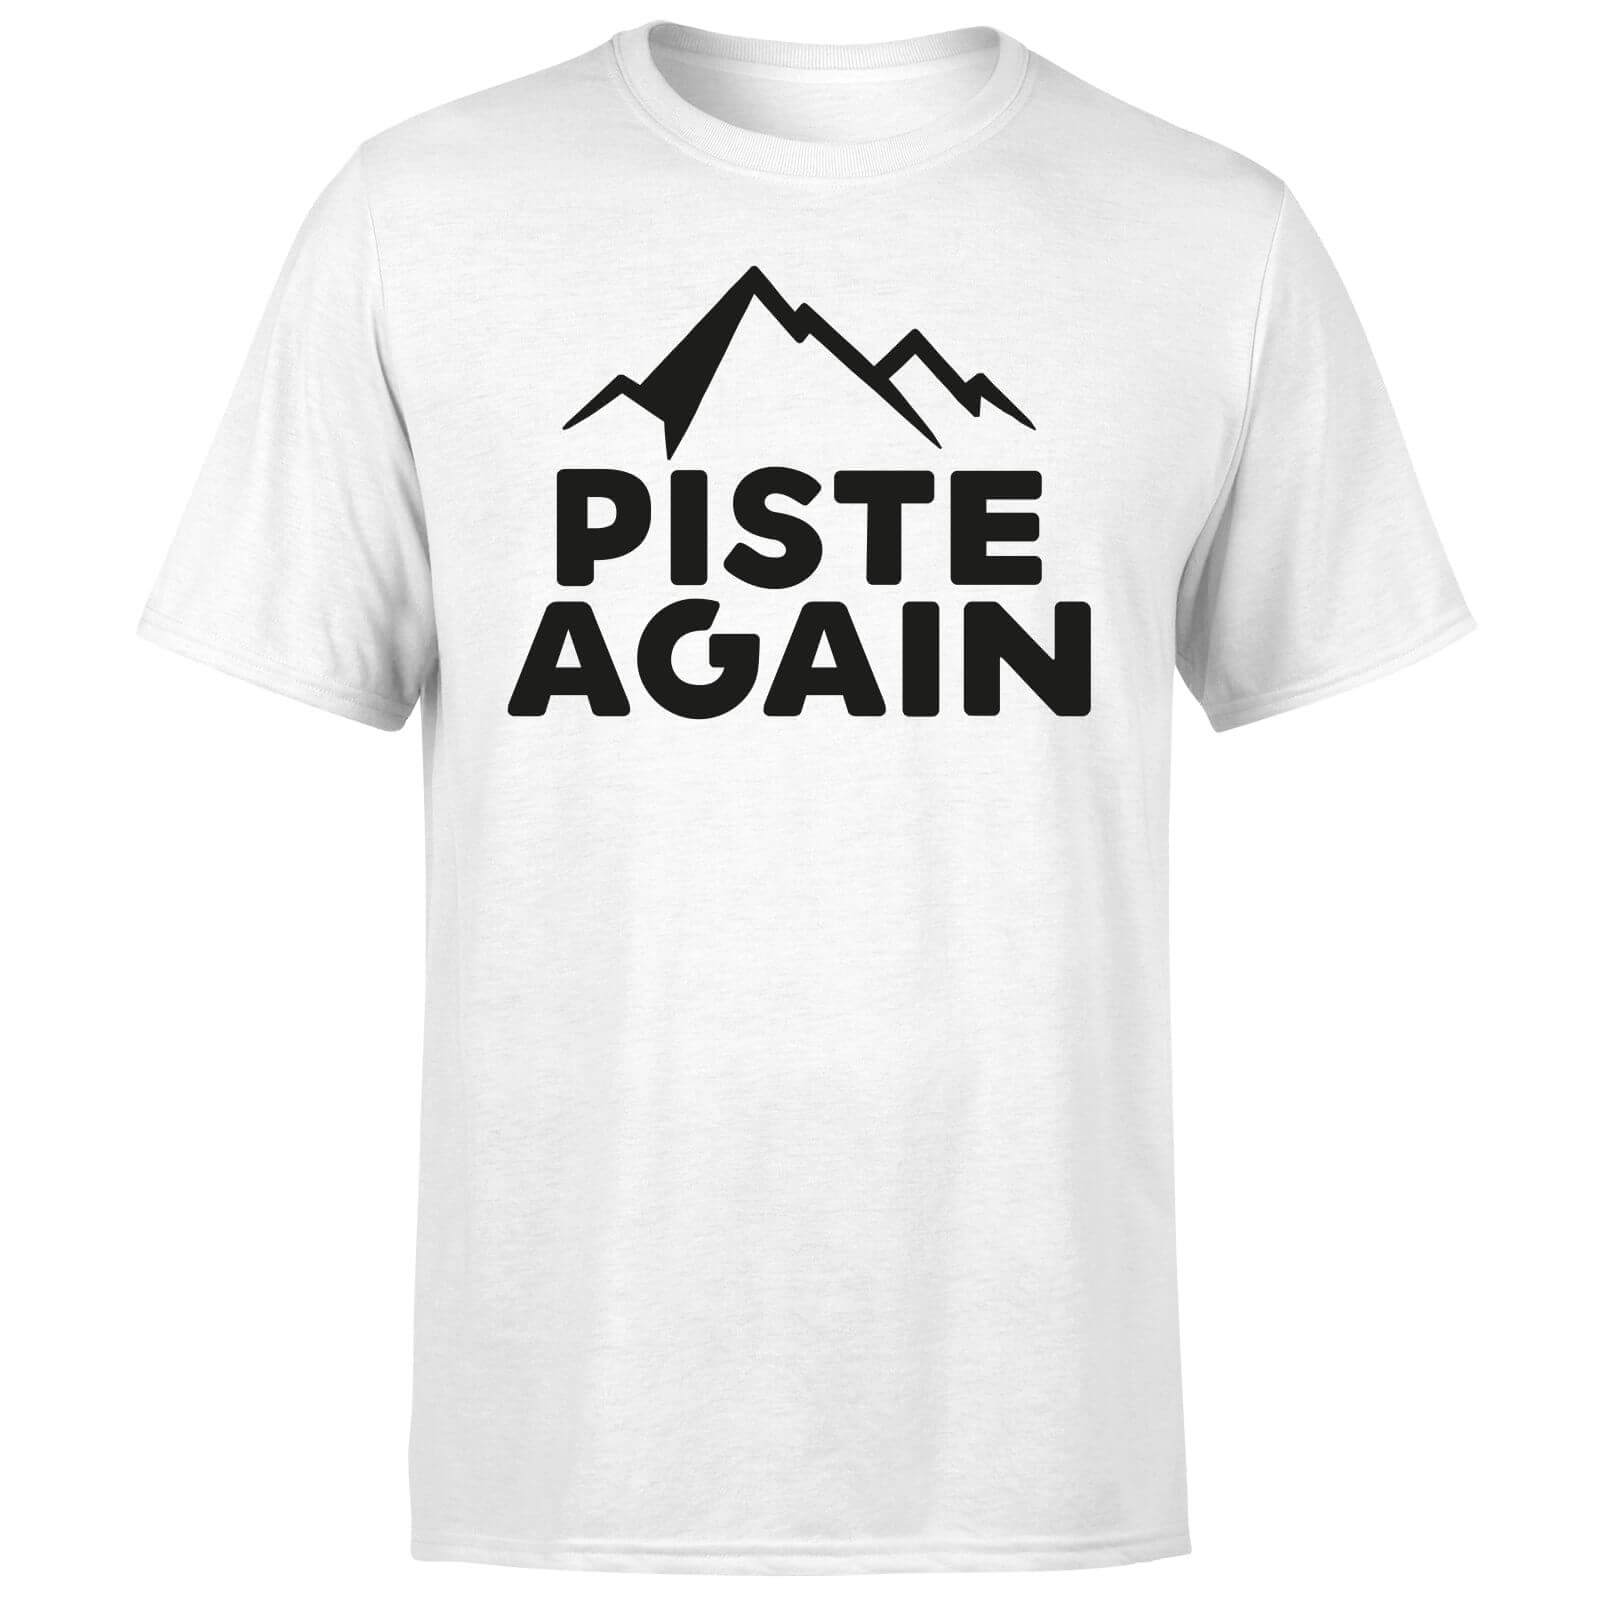 Piste Again T-Shirt - White